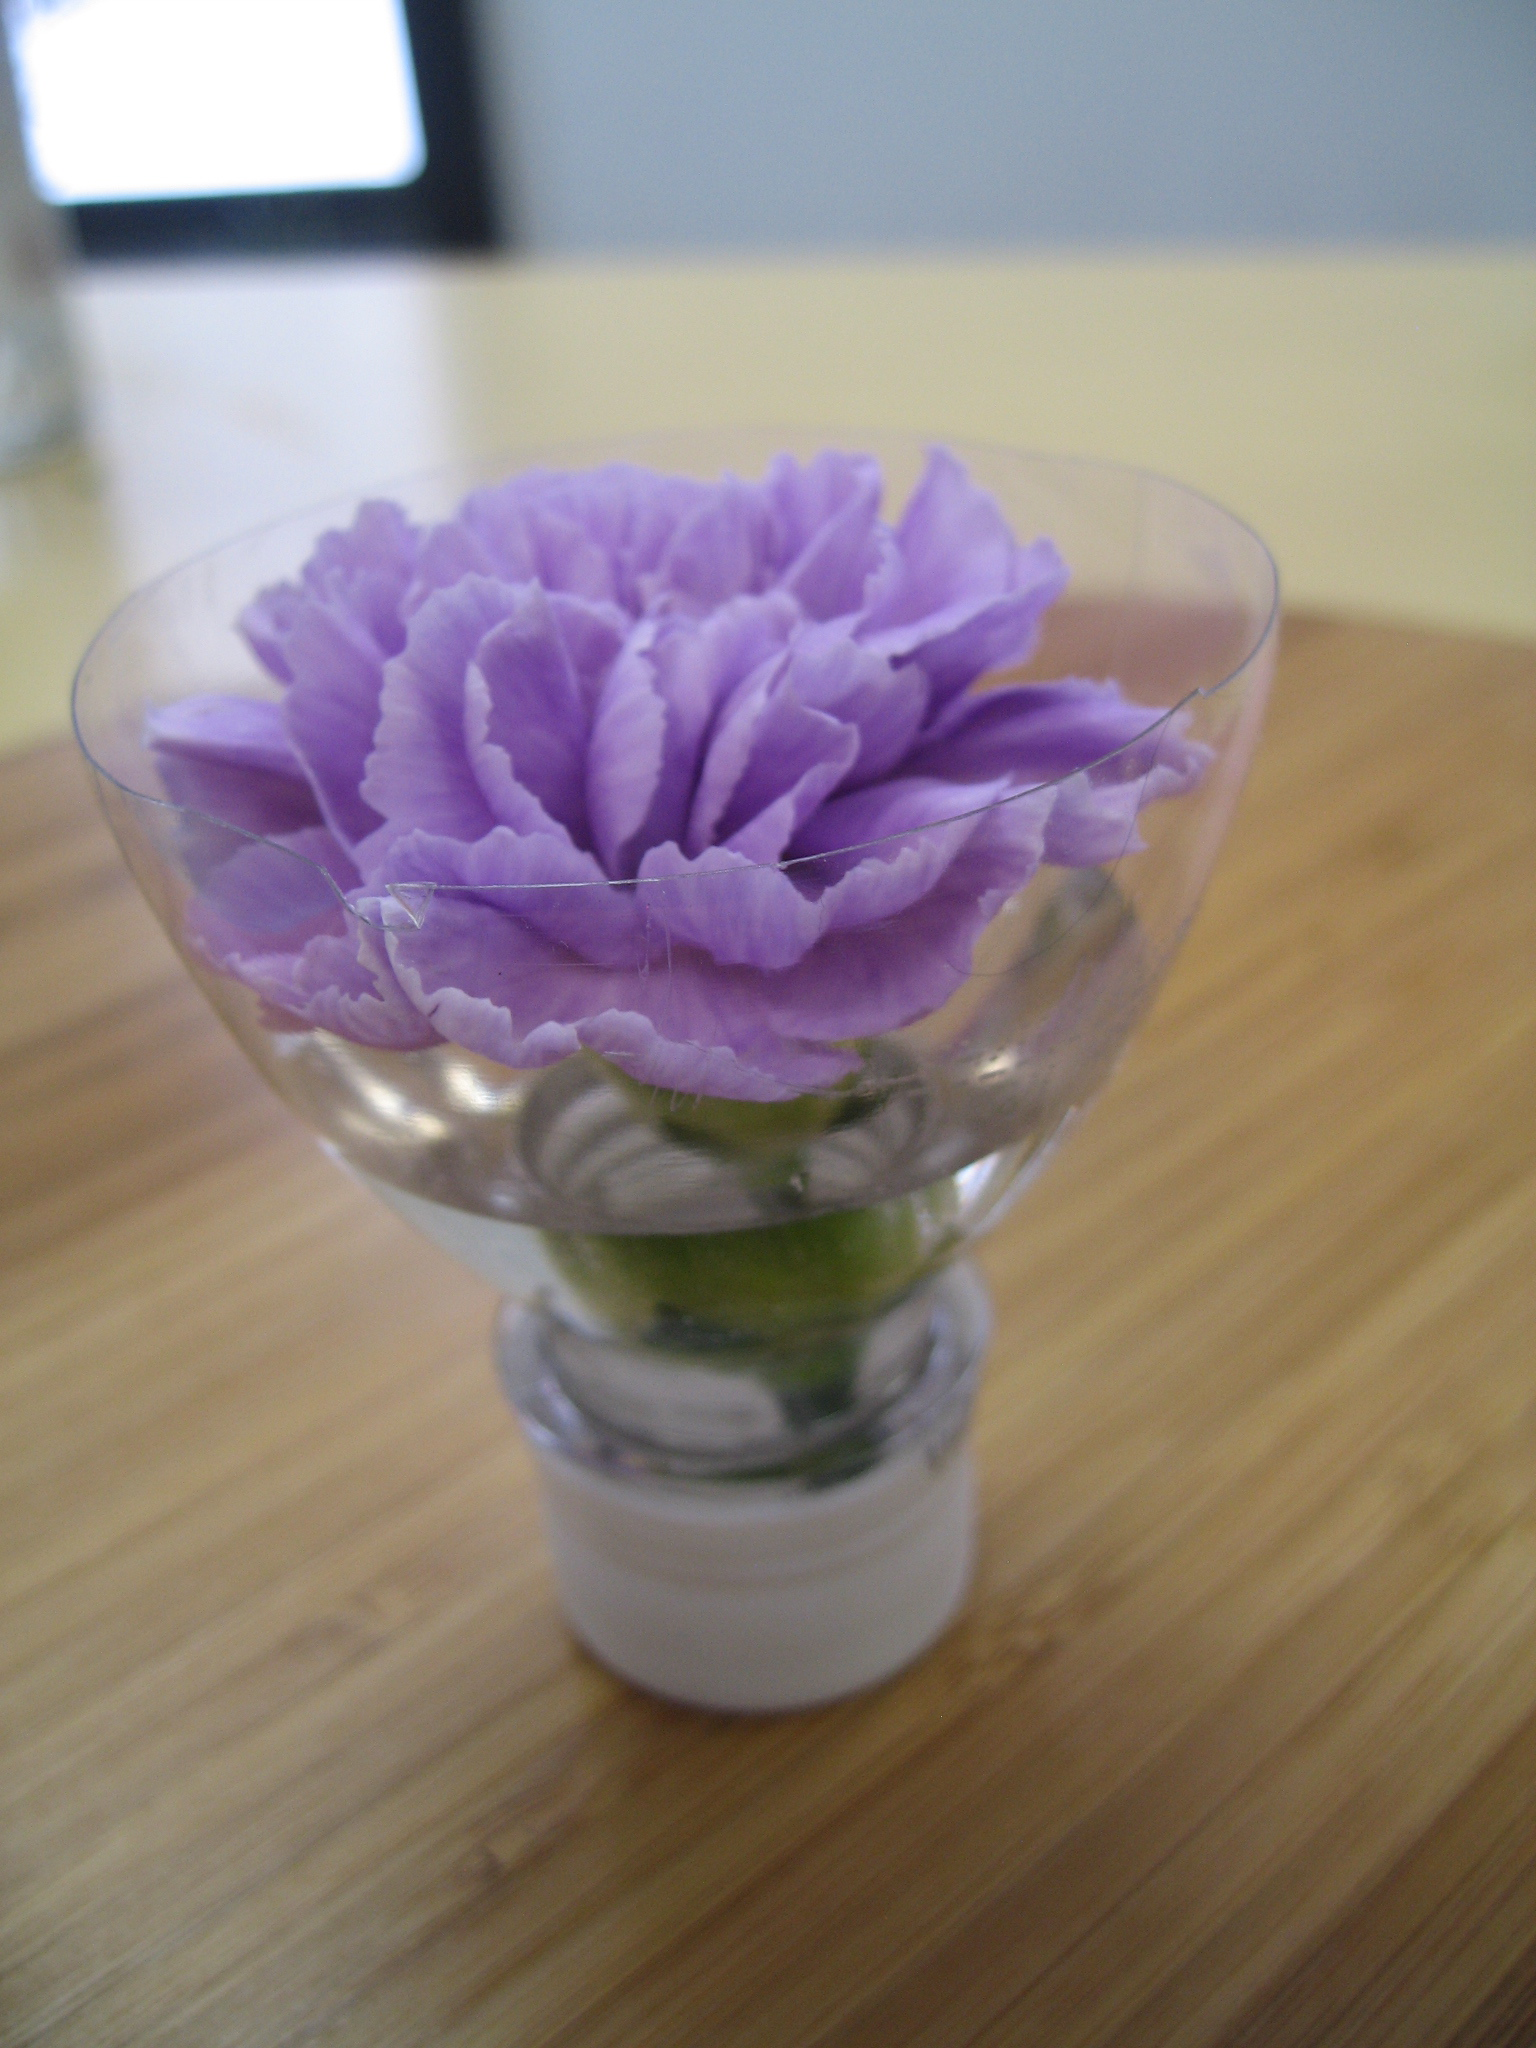 From a simple water bottle you can create this fun vase for a single flower!